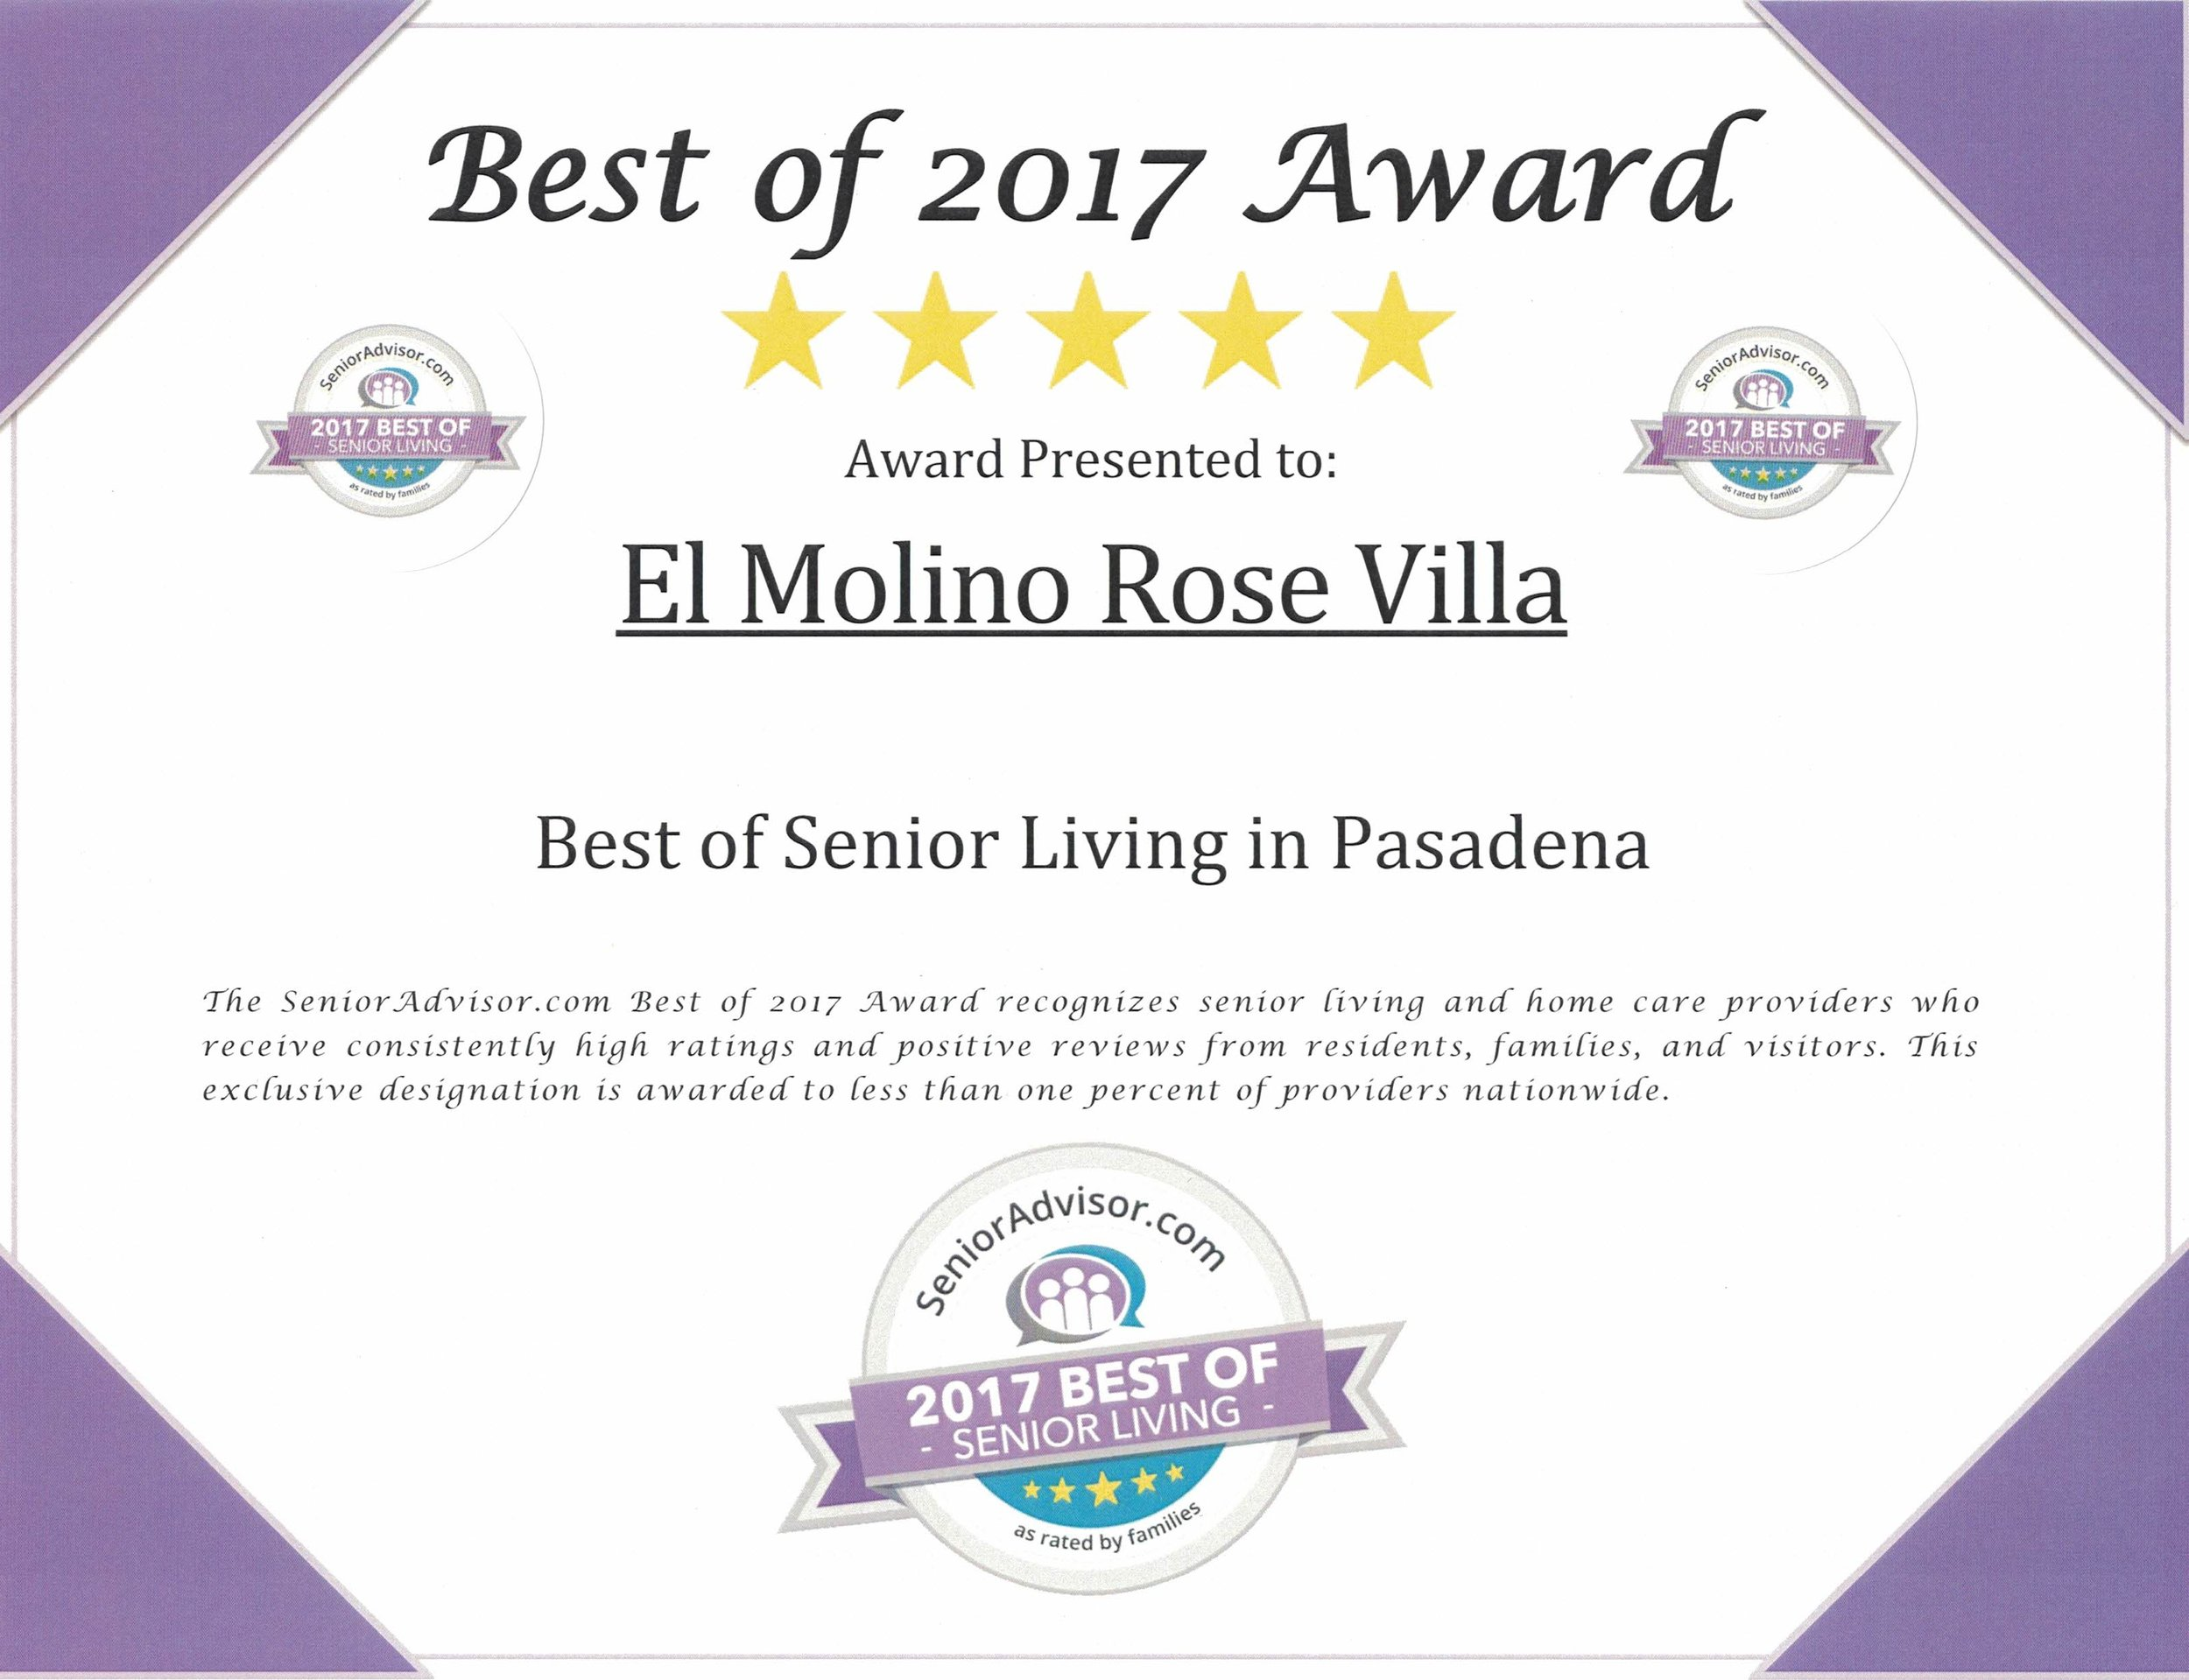 Best of Senior Living Award 2017.jpg